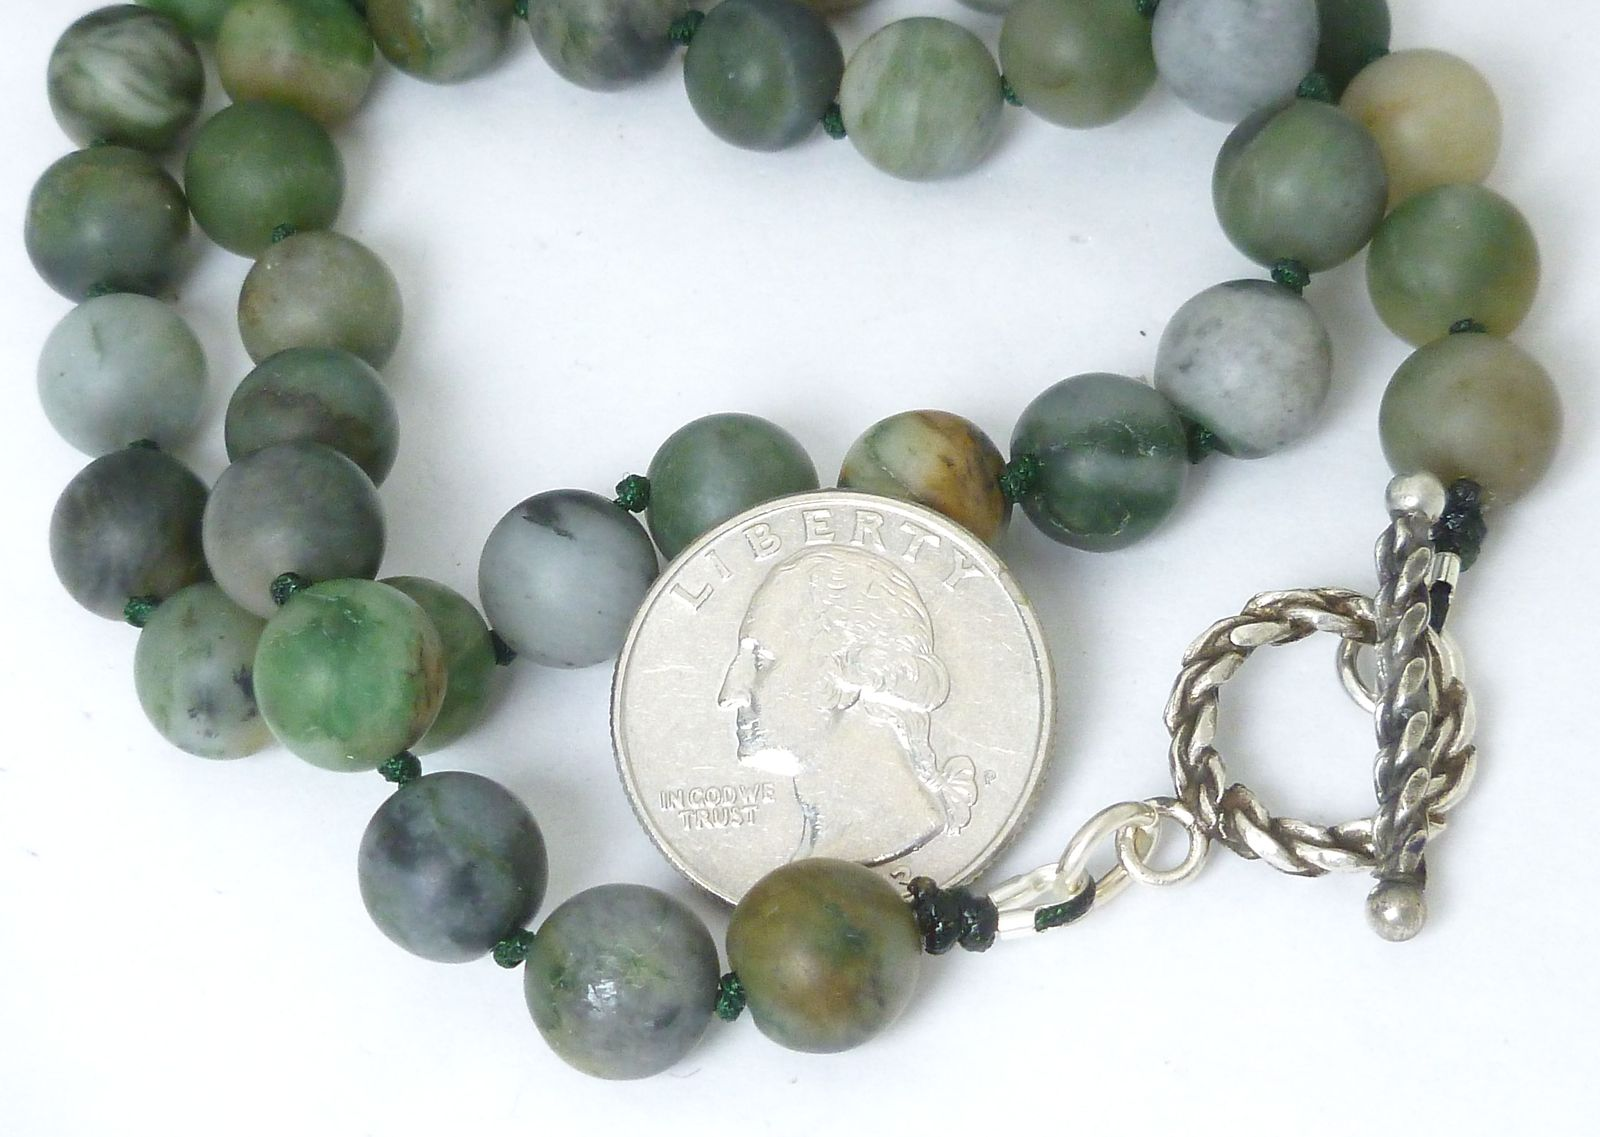 Polar Jade Round Matte 10mm Green Gemstone Necklace 19 inch